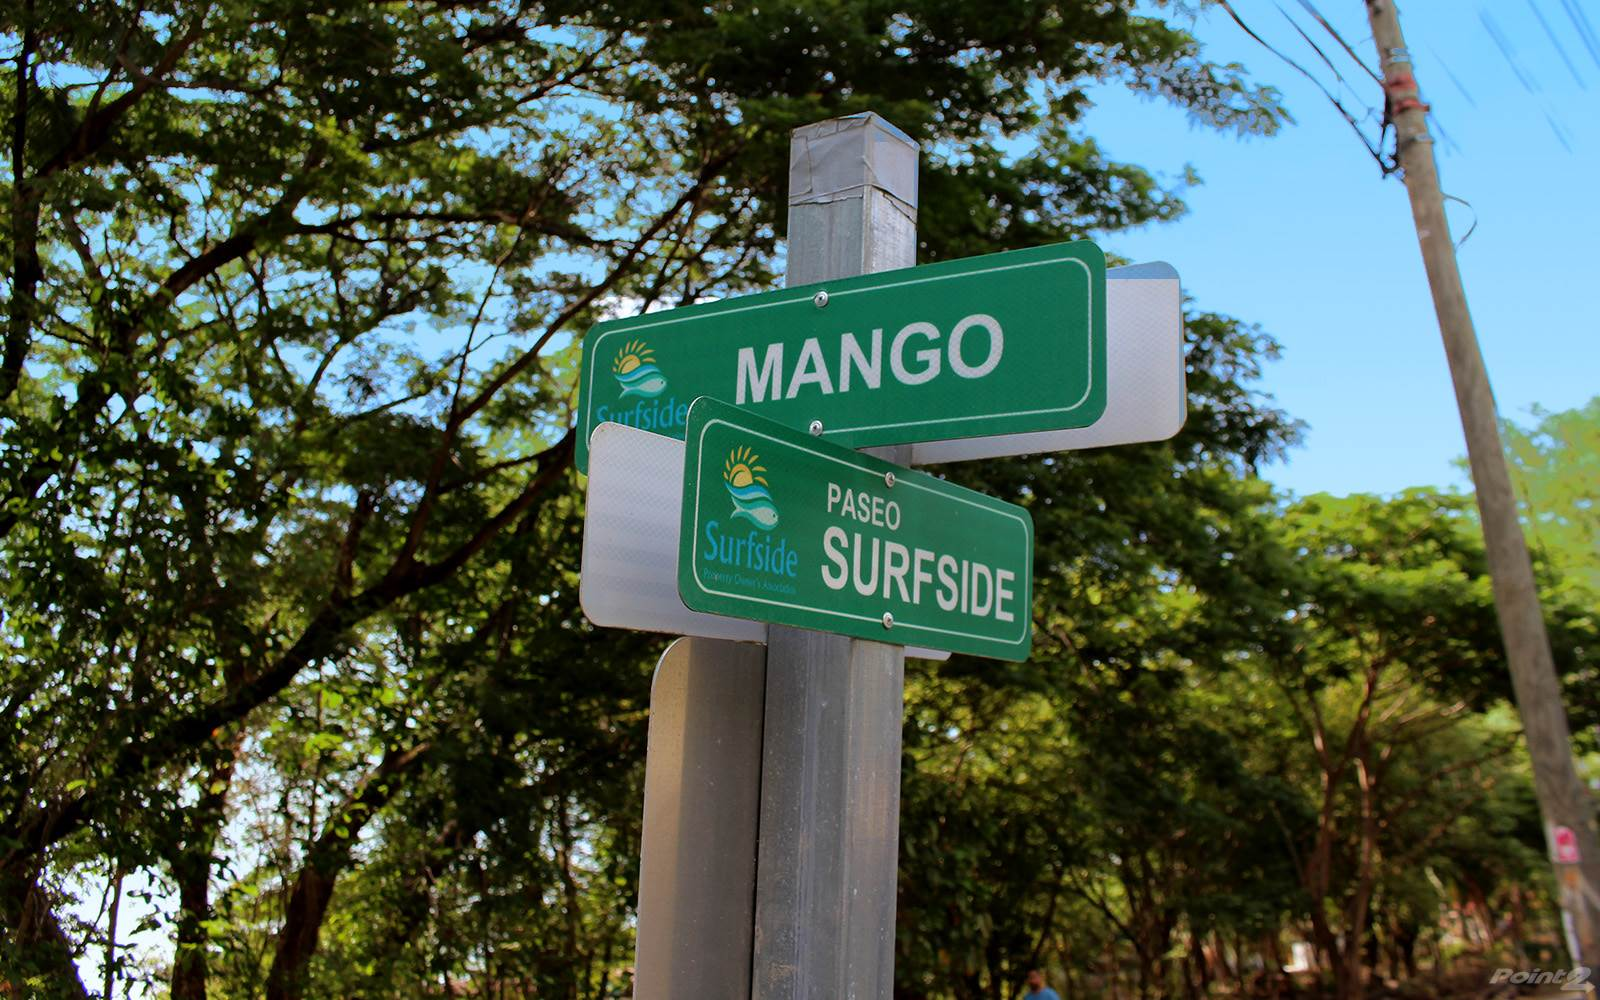 Продажа жилищных объектов в Calle Mango: Surfside/Portrero Rediential Building Lot Ready To Build, Potrero, Guanacaste   , Коста-Рика